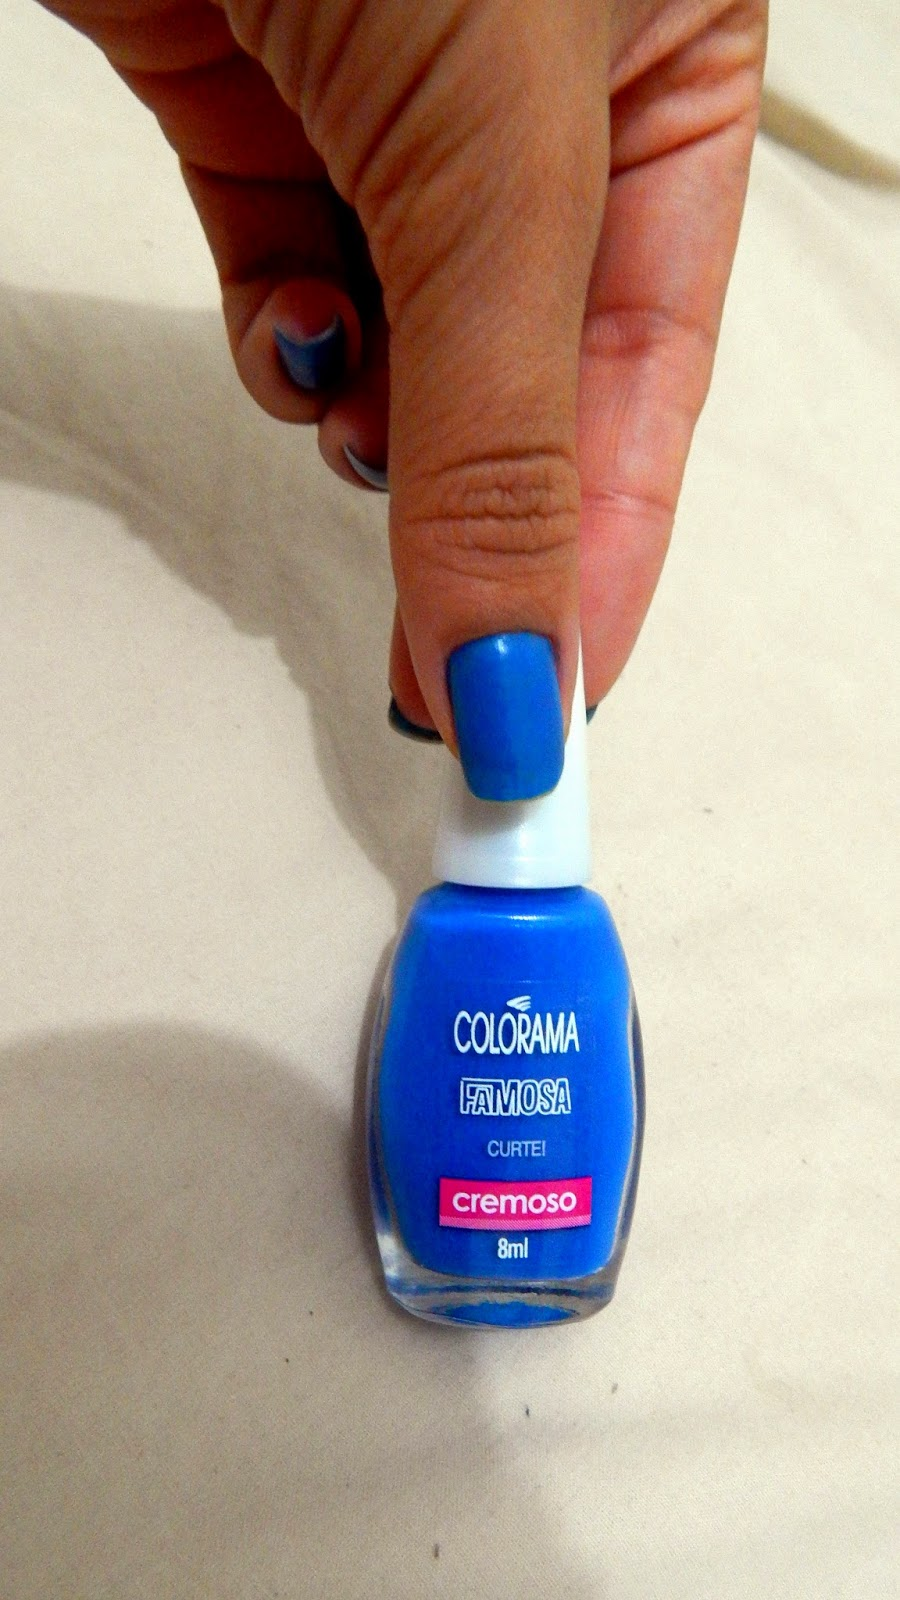 Unhas da Semana: Colorama Famosa - Curte!